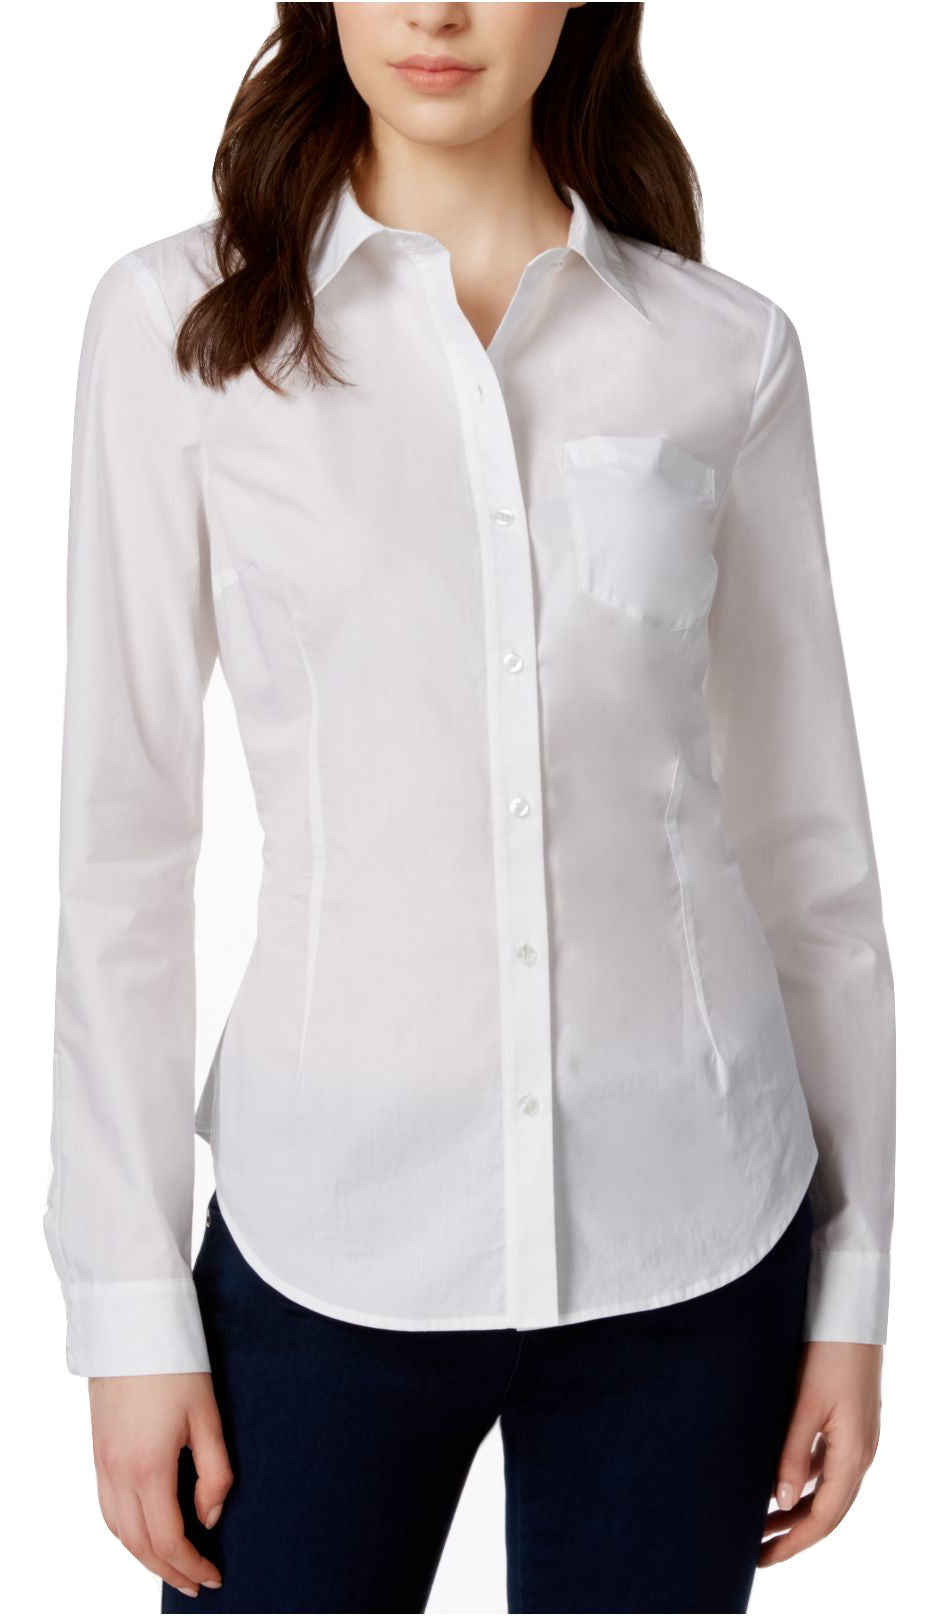 Rachel Rachel Roy Cutout Button-Down Shirt White S